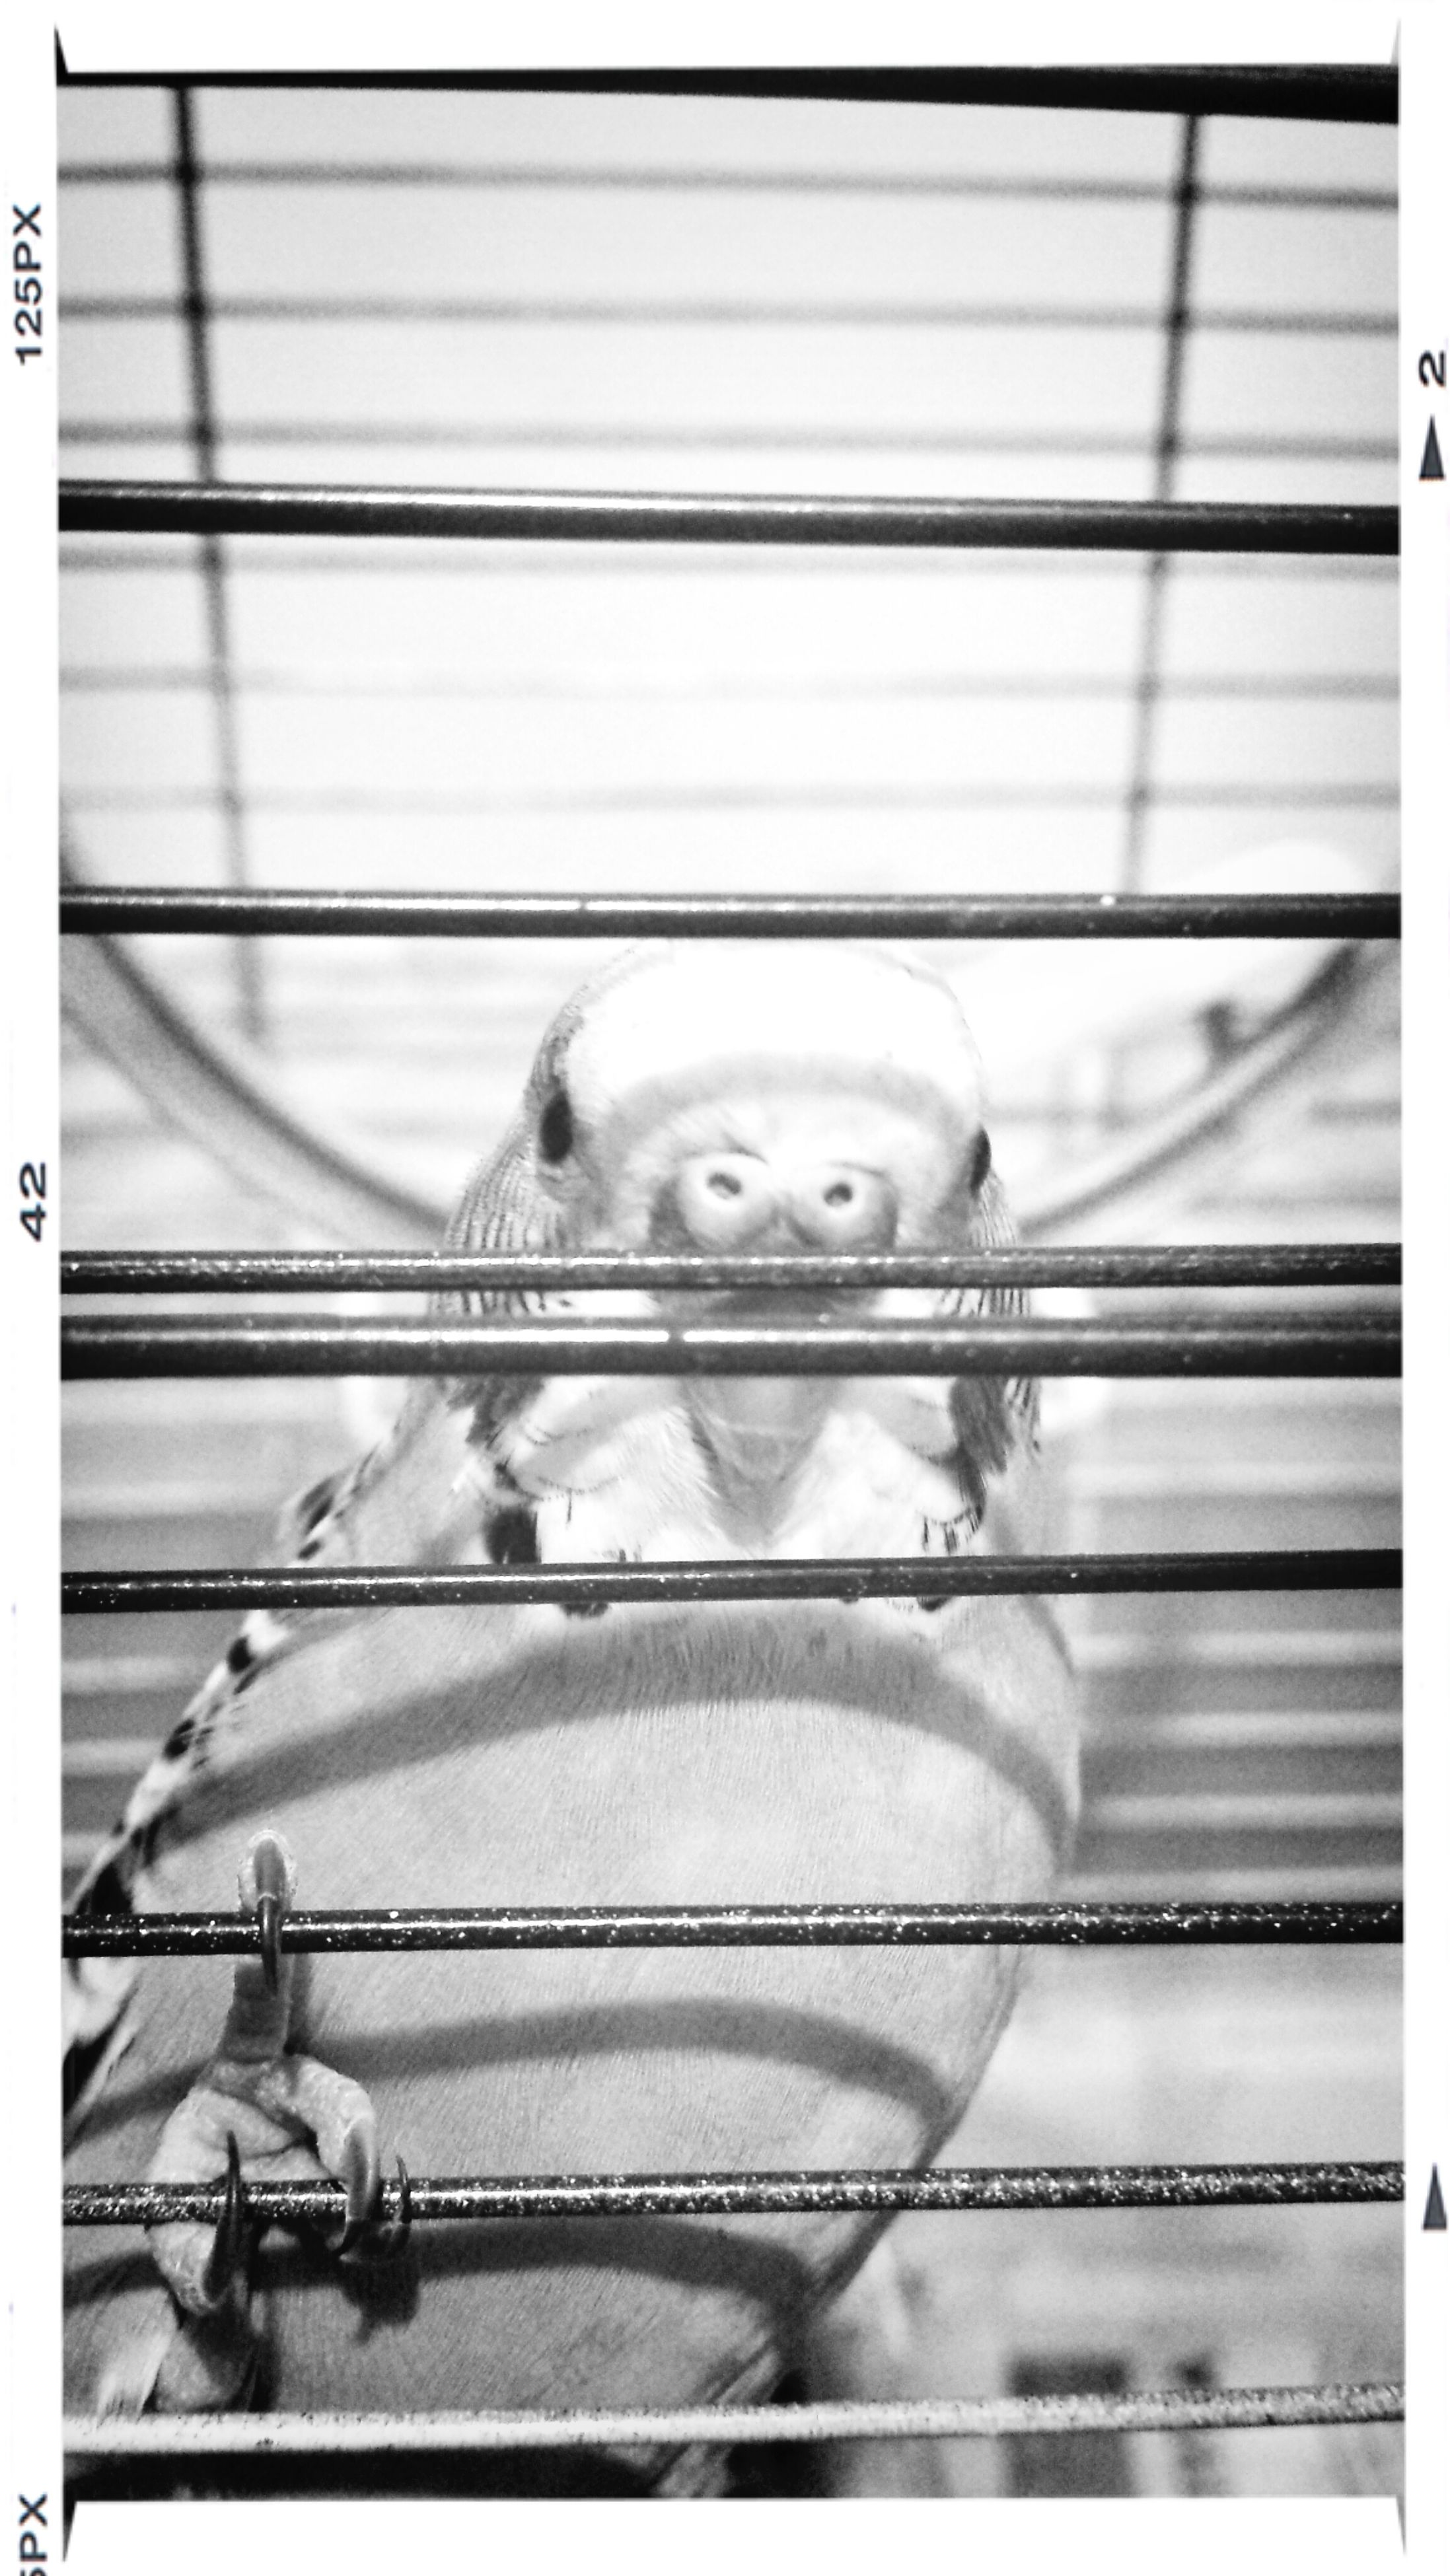 indoors, transfer print, animal themes, auto post production filter, one animal, close-up, metal, no people, high angle view, animal head, day, part of, cage, wildlife, pets, domestic animals, wall - building feature, portrait, railing, pattern